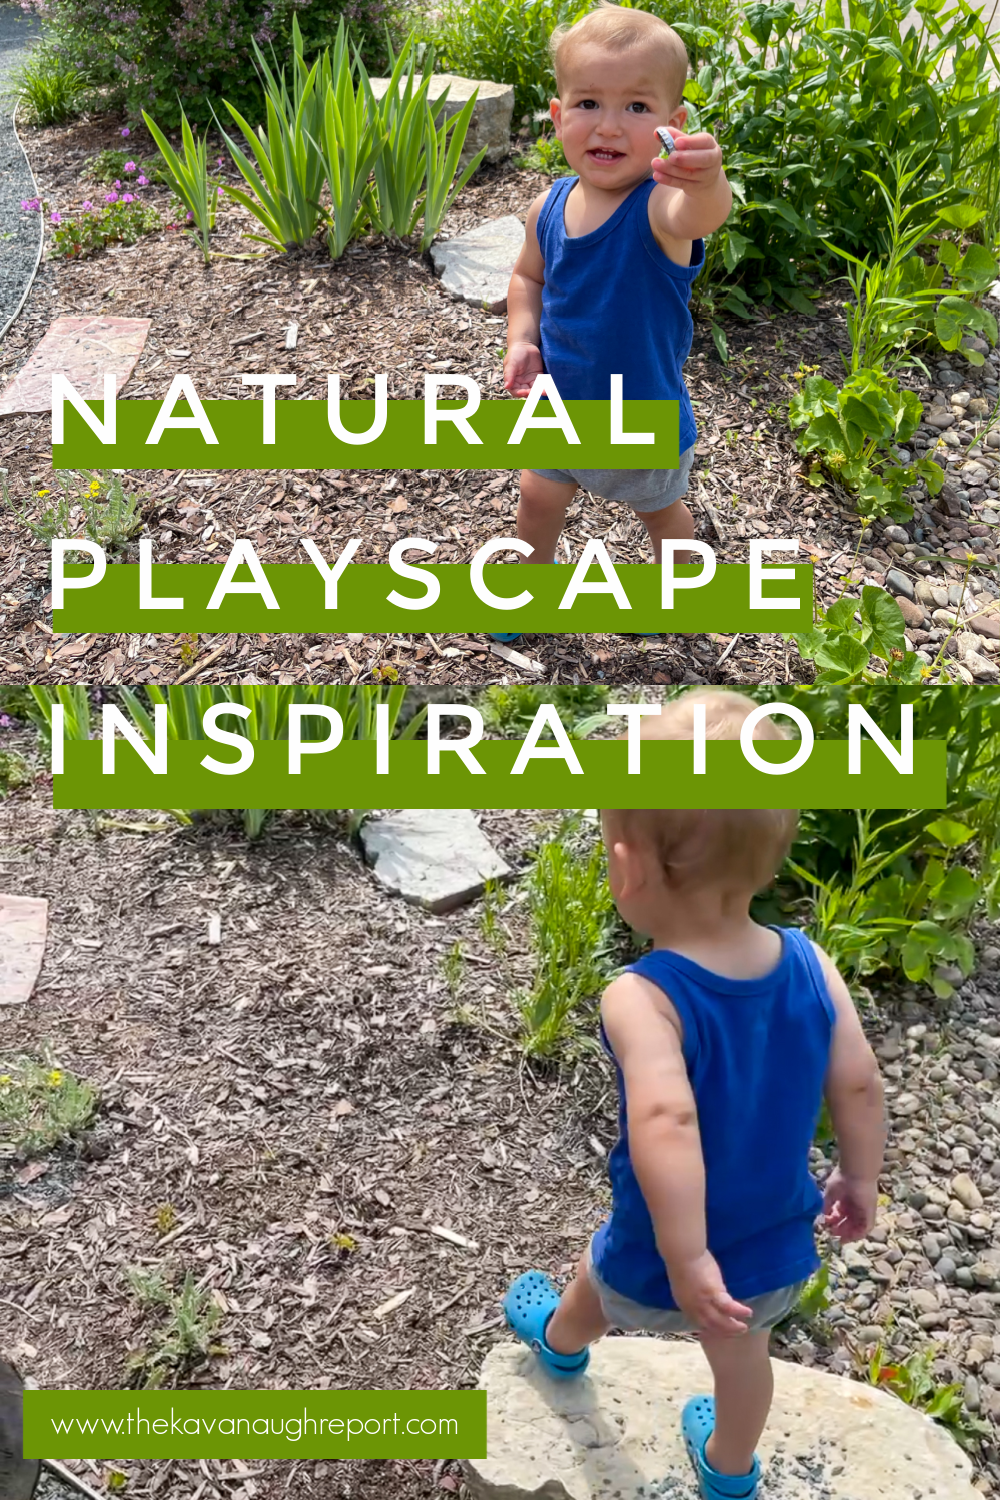 Here is some inspiration for a Montessori inspired natural playscape and backyard playground.